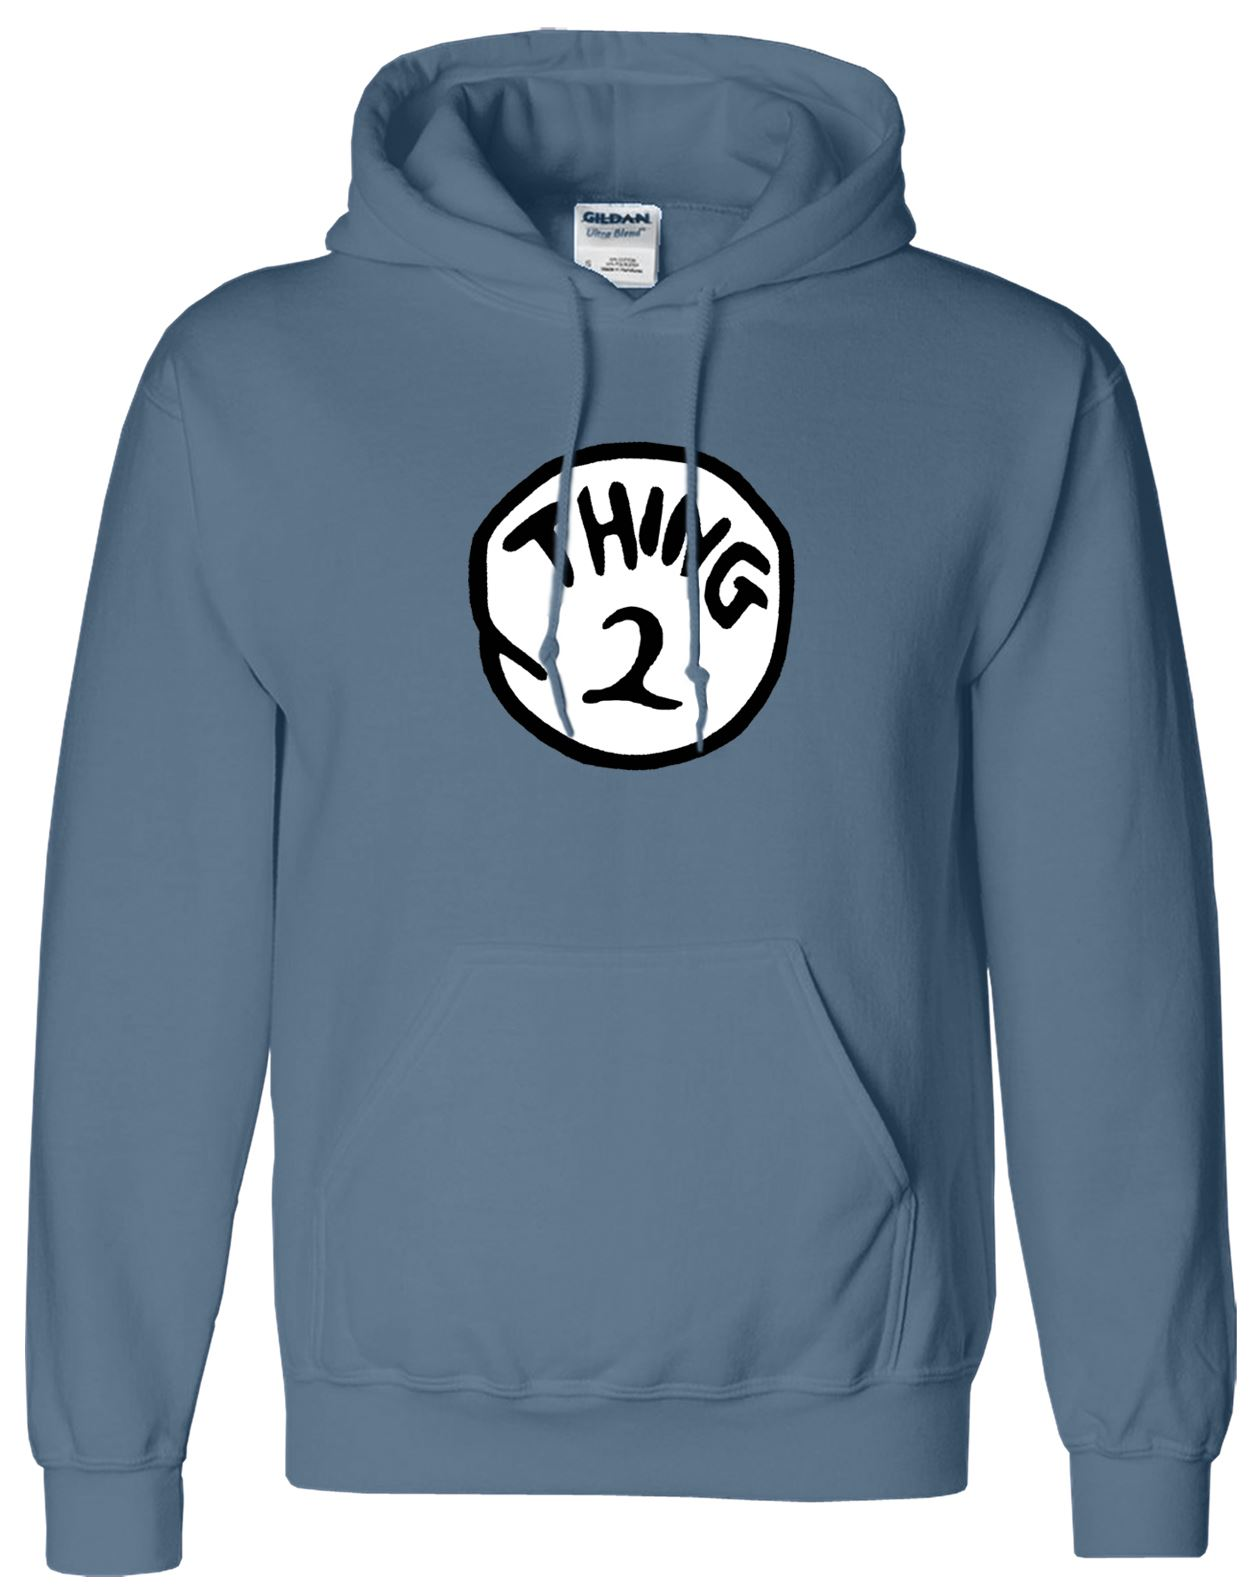 Thing 1 2 Mens Present Book Day Hoodie Unisex Gift Birthday Pullover Jumper